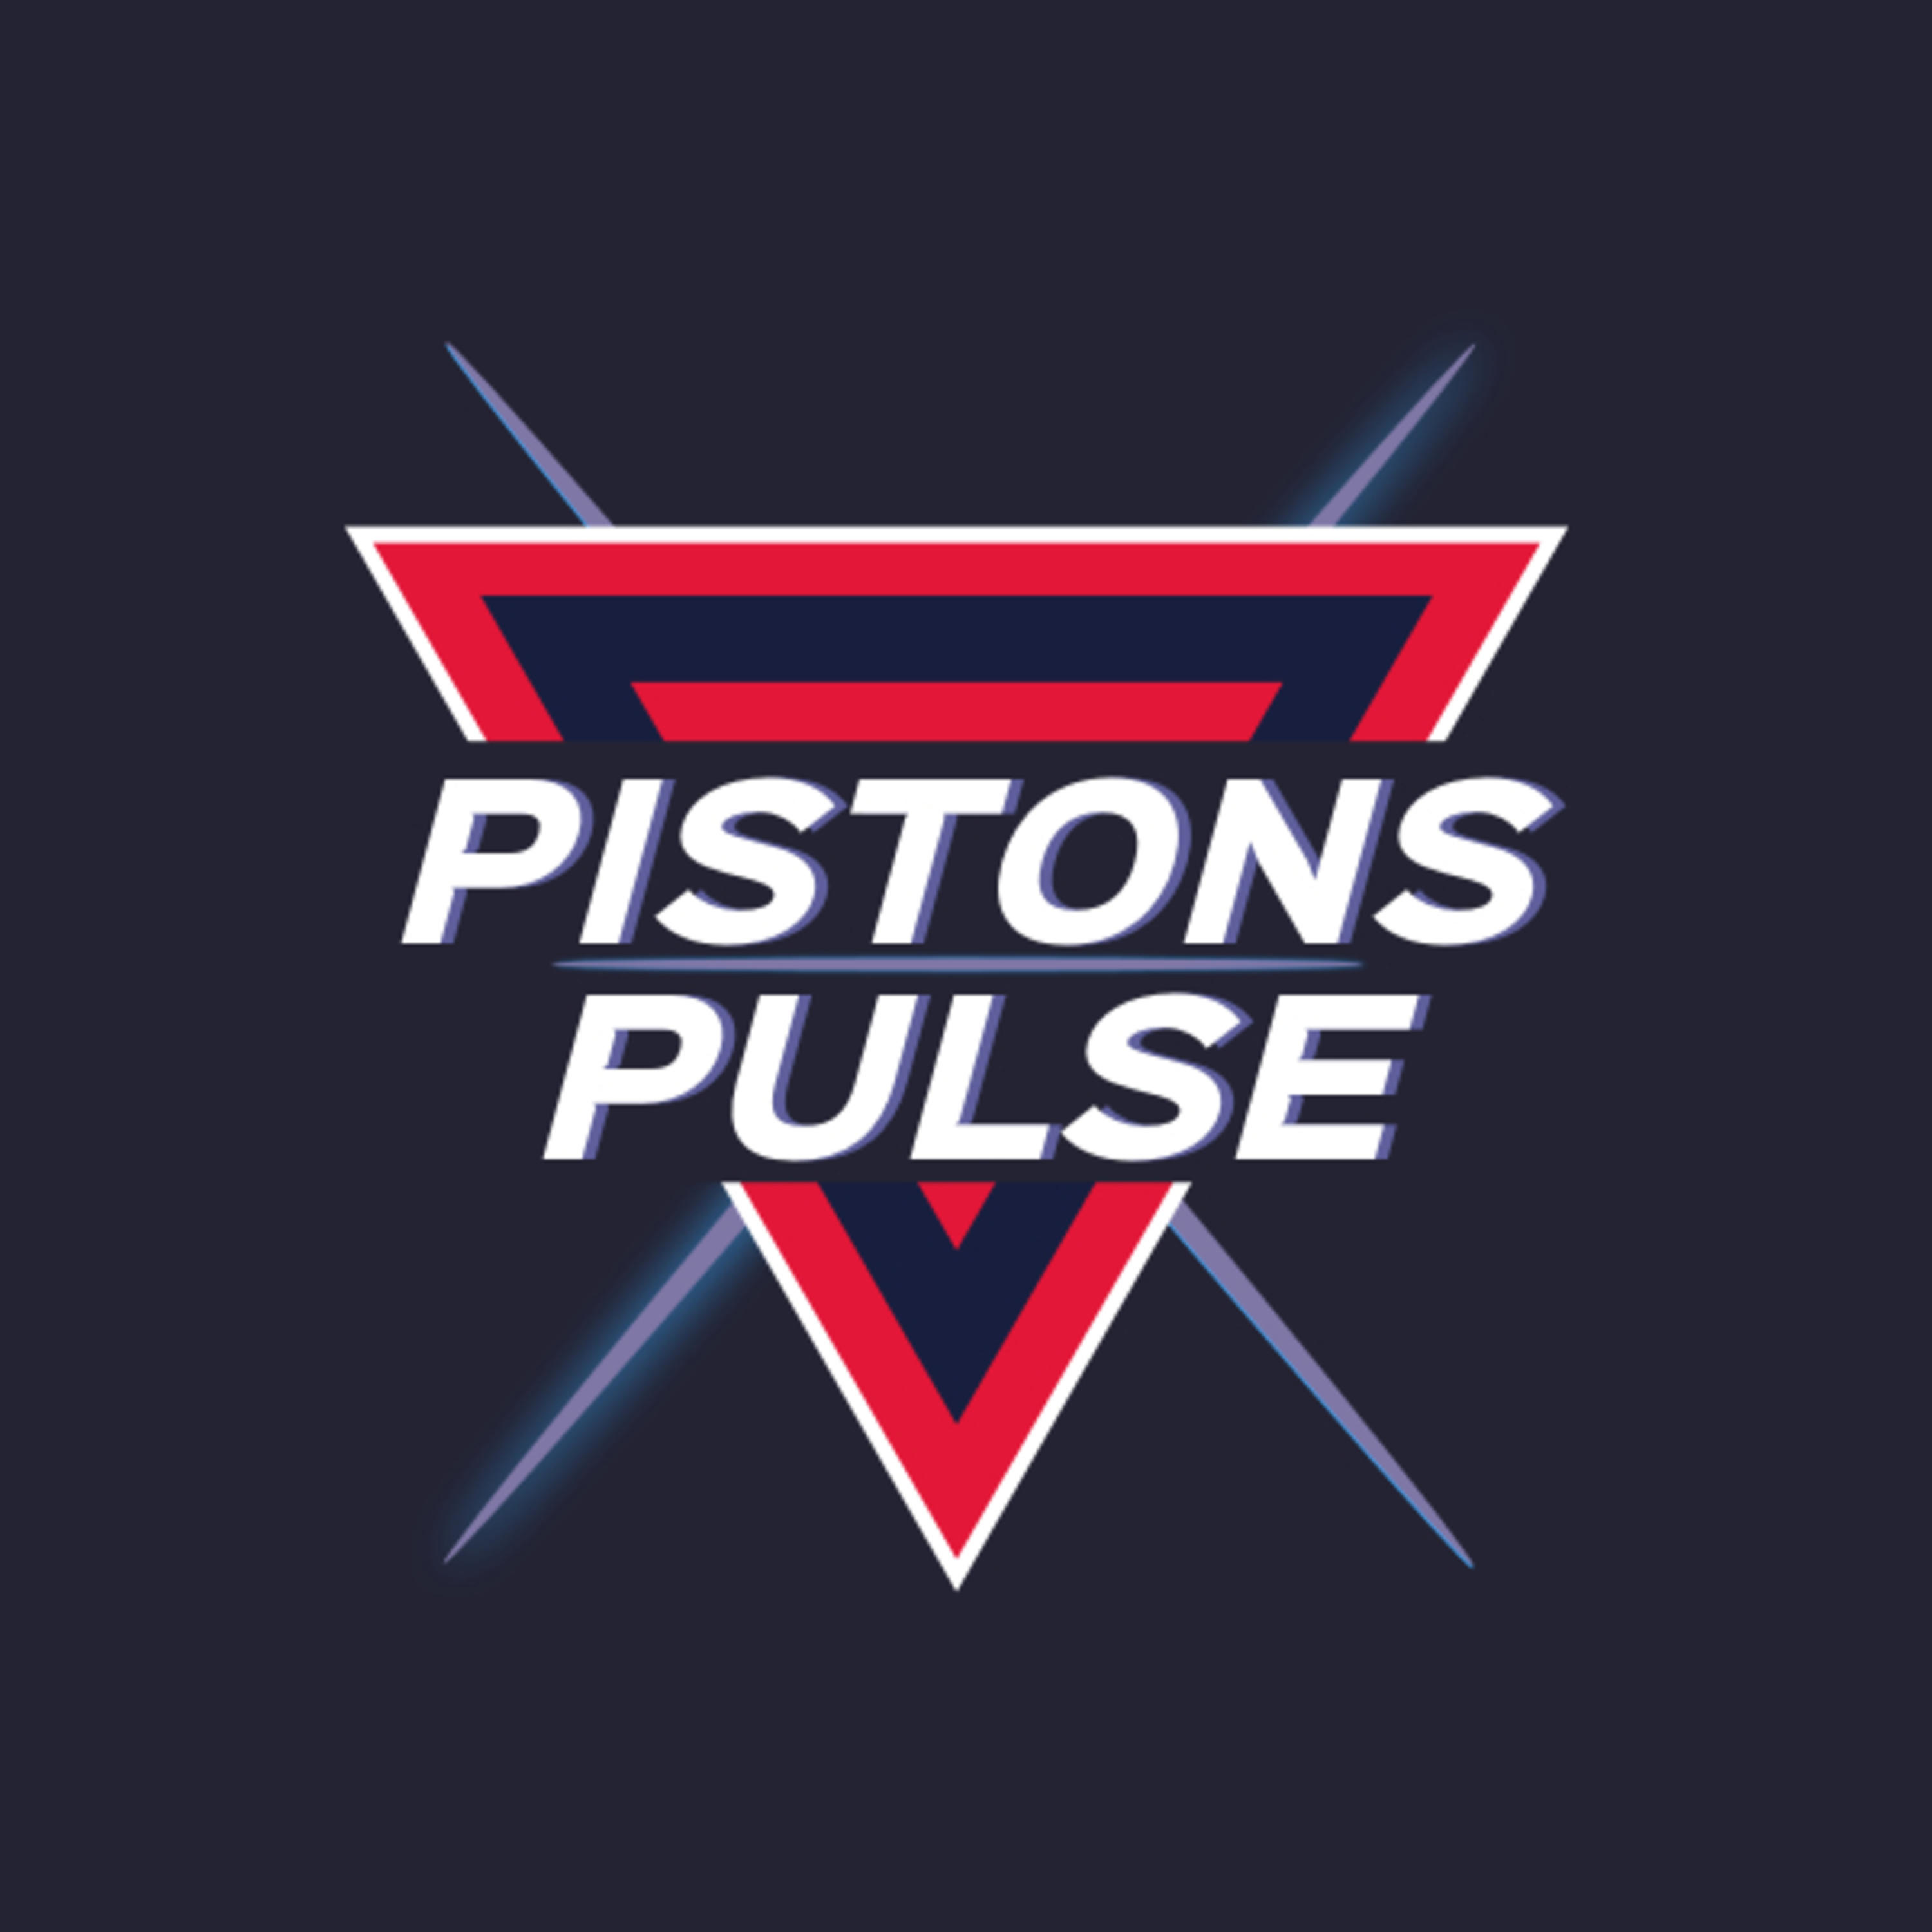 Pistons Pulse Episode 4 - (2/14/2019) - Tough loss against the Celtics, Blake Griffin rant, and the All Star break